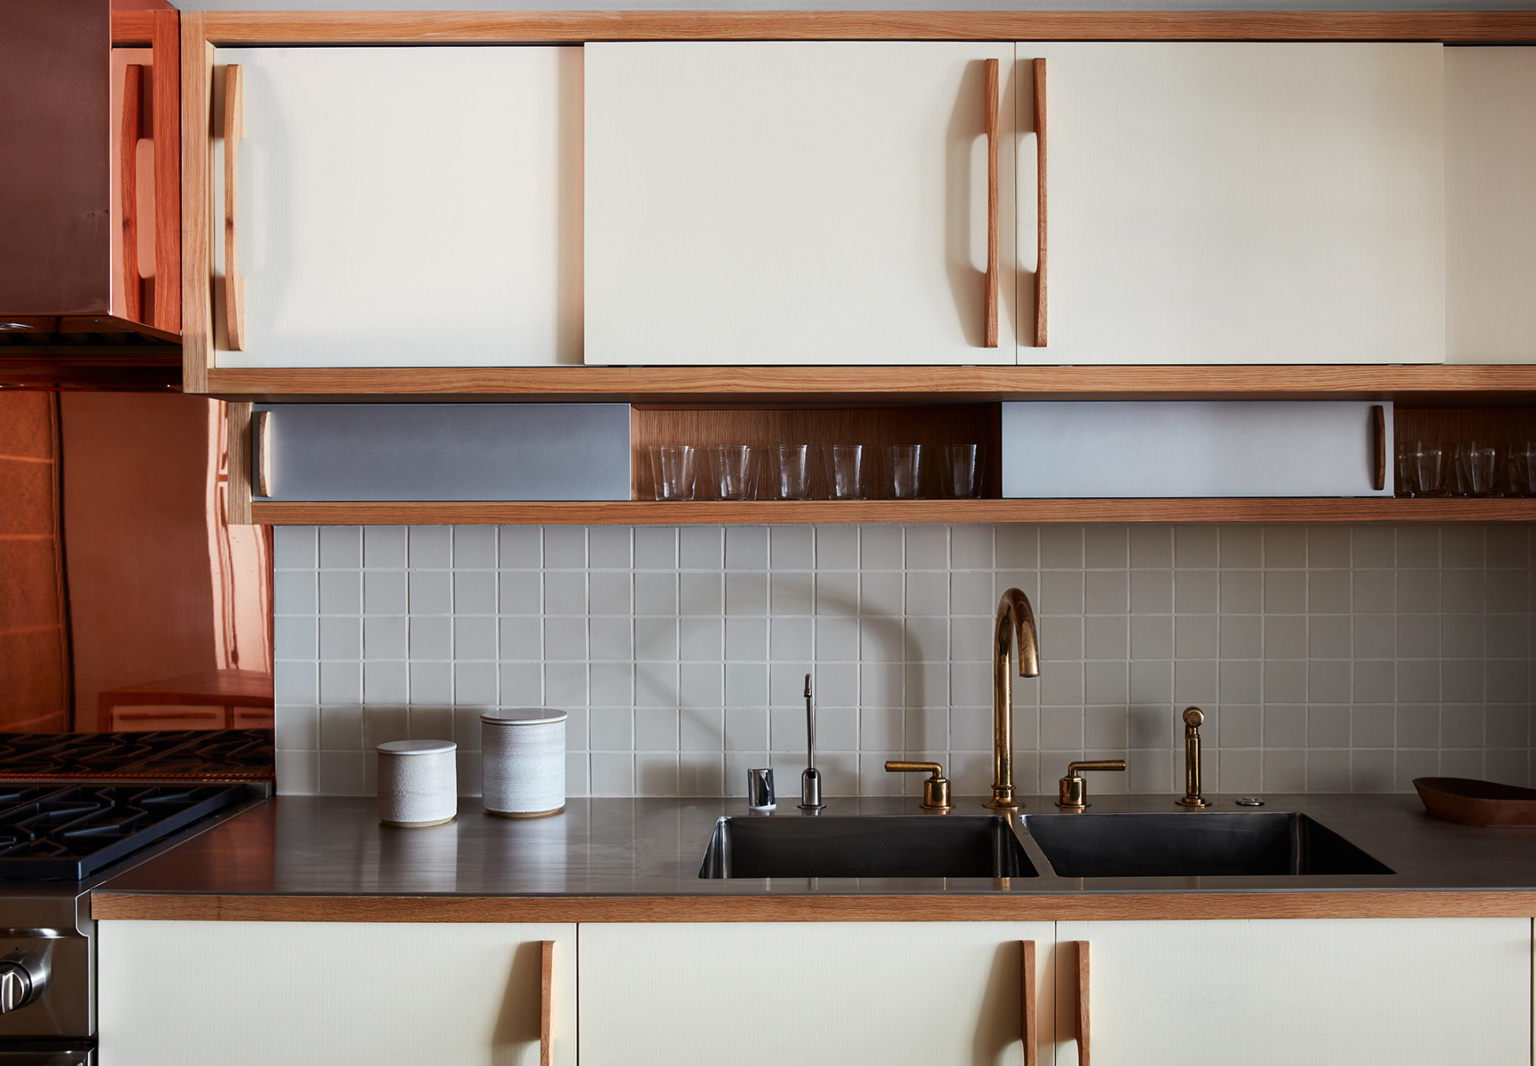 Kitchen of the Week: French Mid-Century Style in Santa Monica